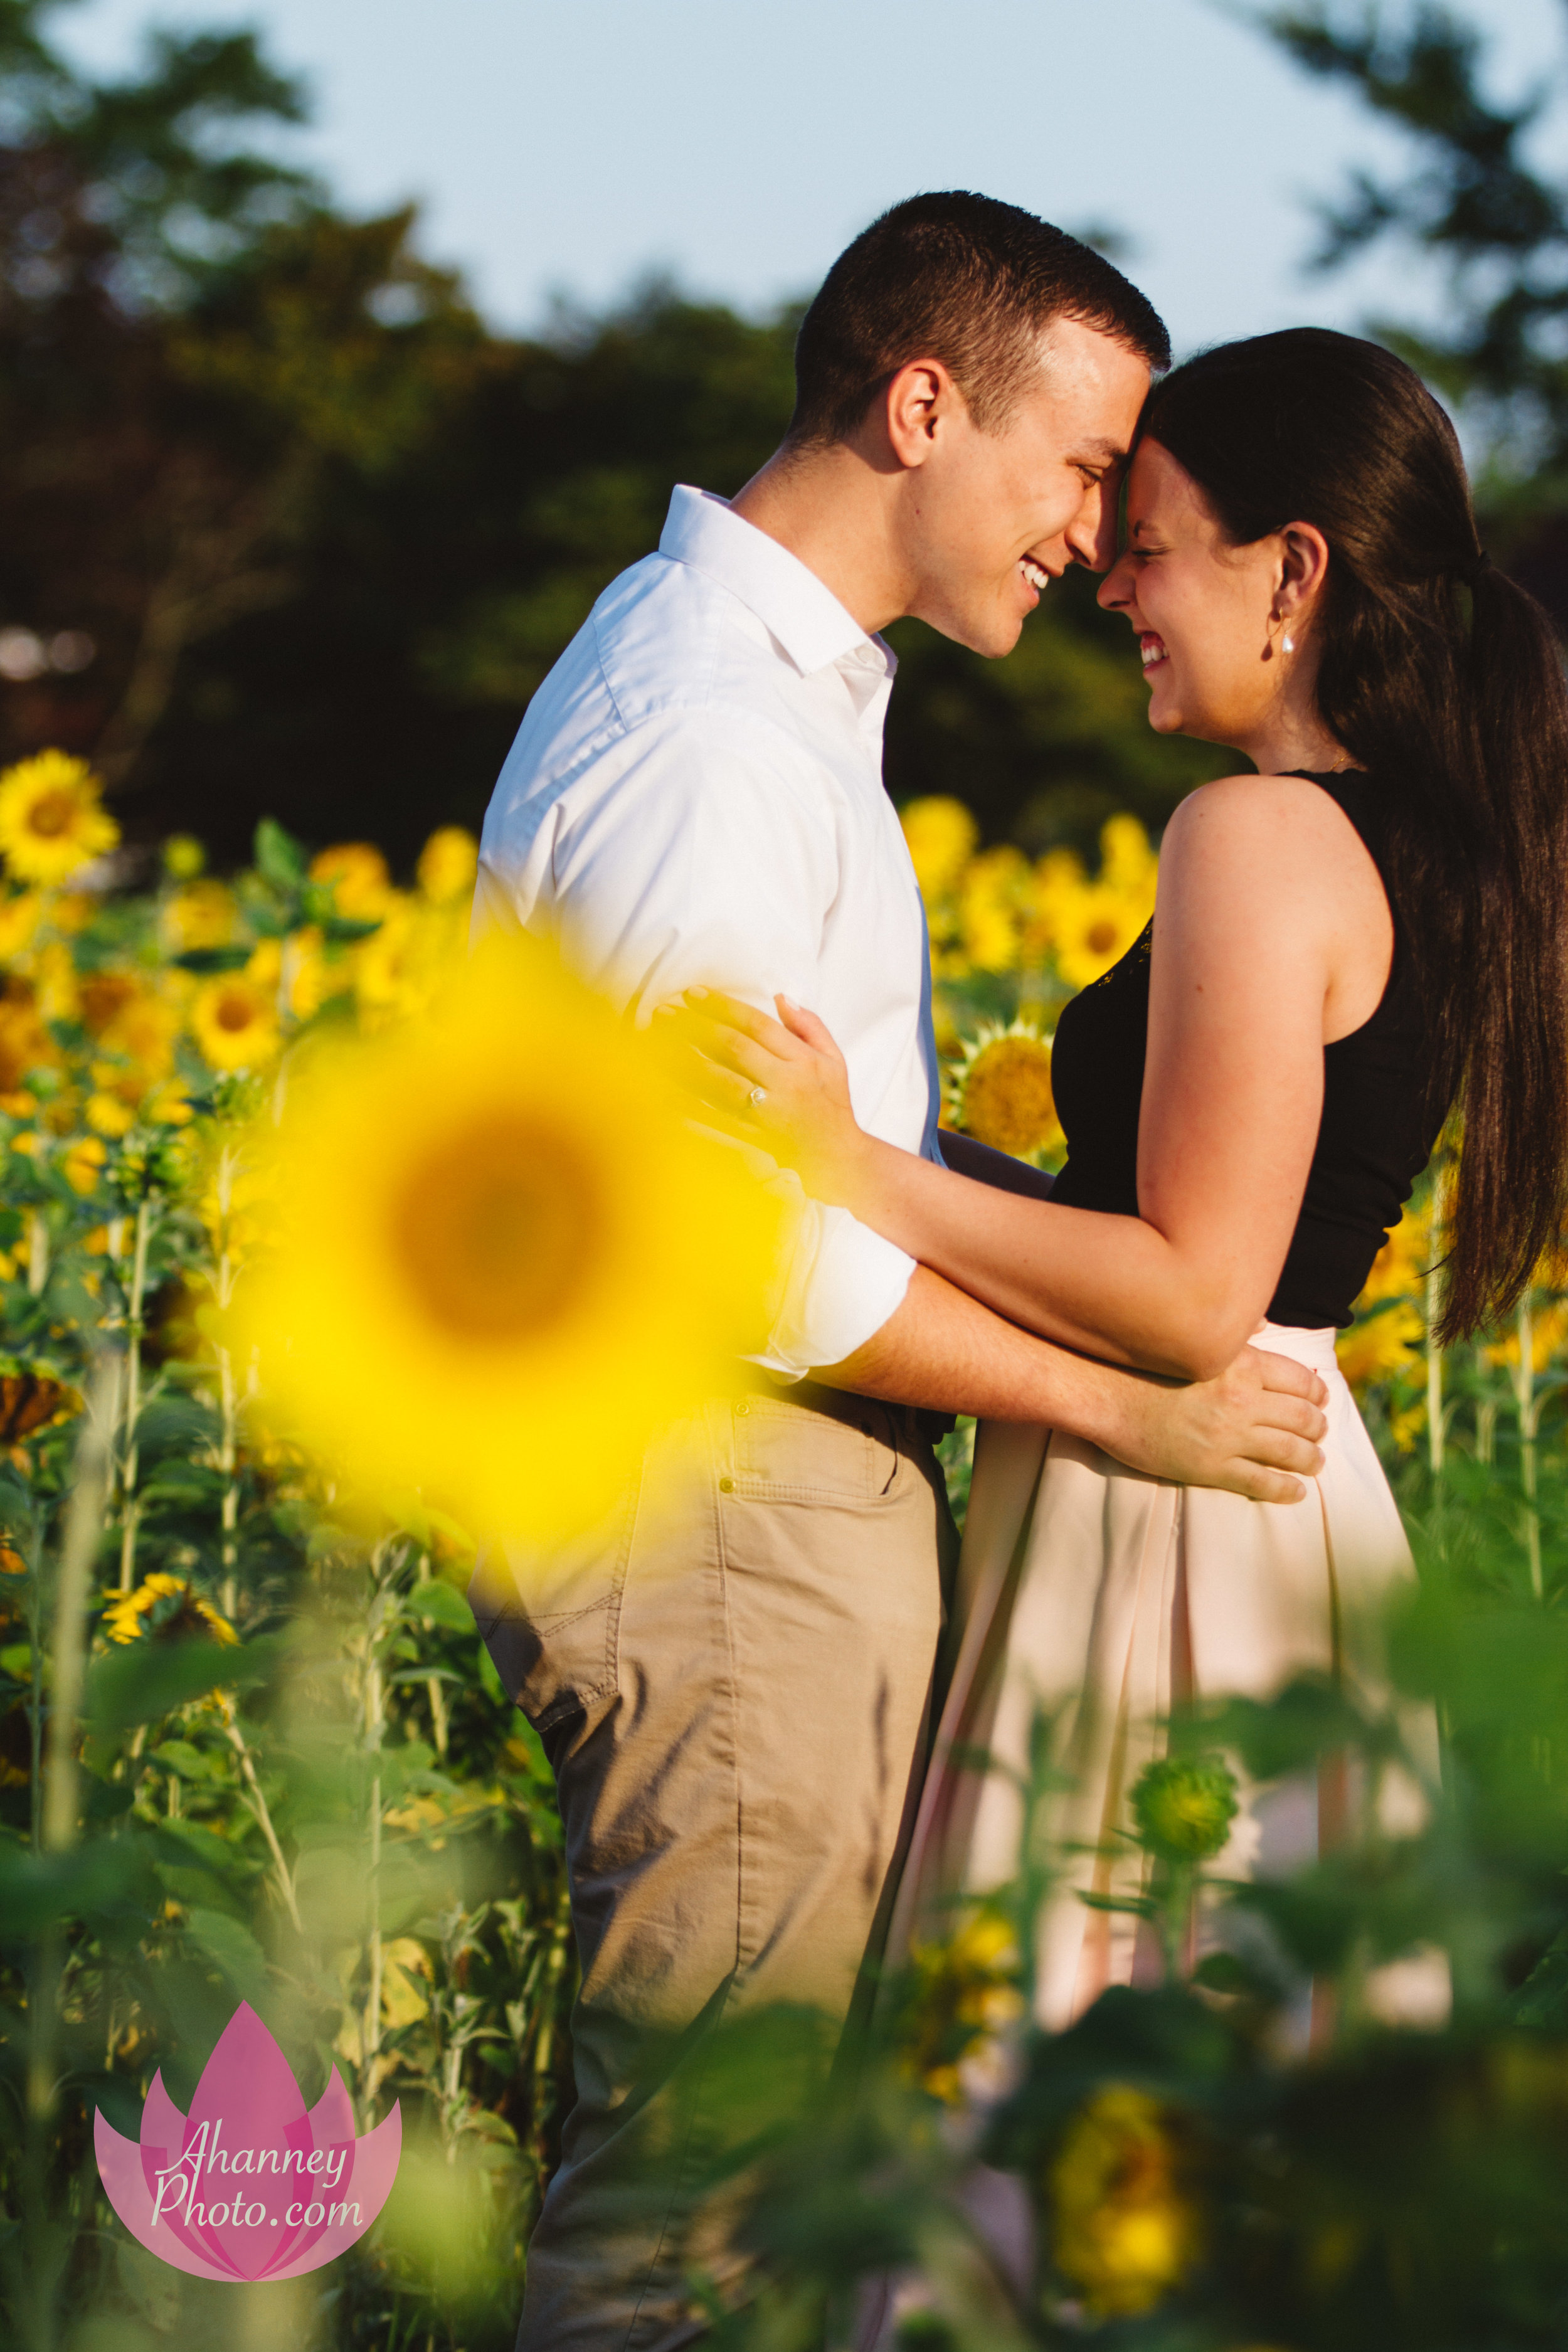 Engagement Photographer in Cape May in Sunflower Field Kissing She Said Yes